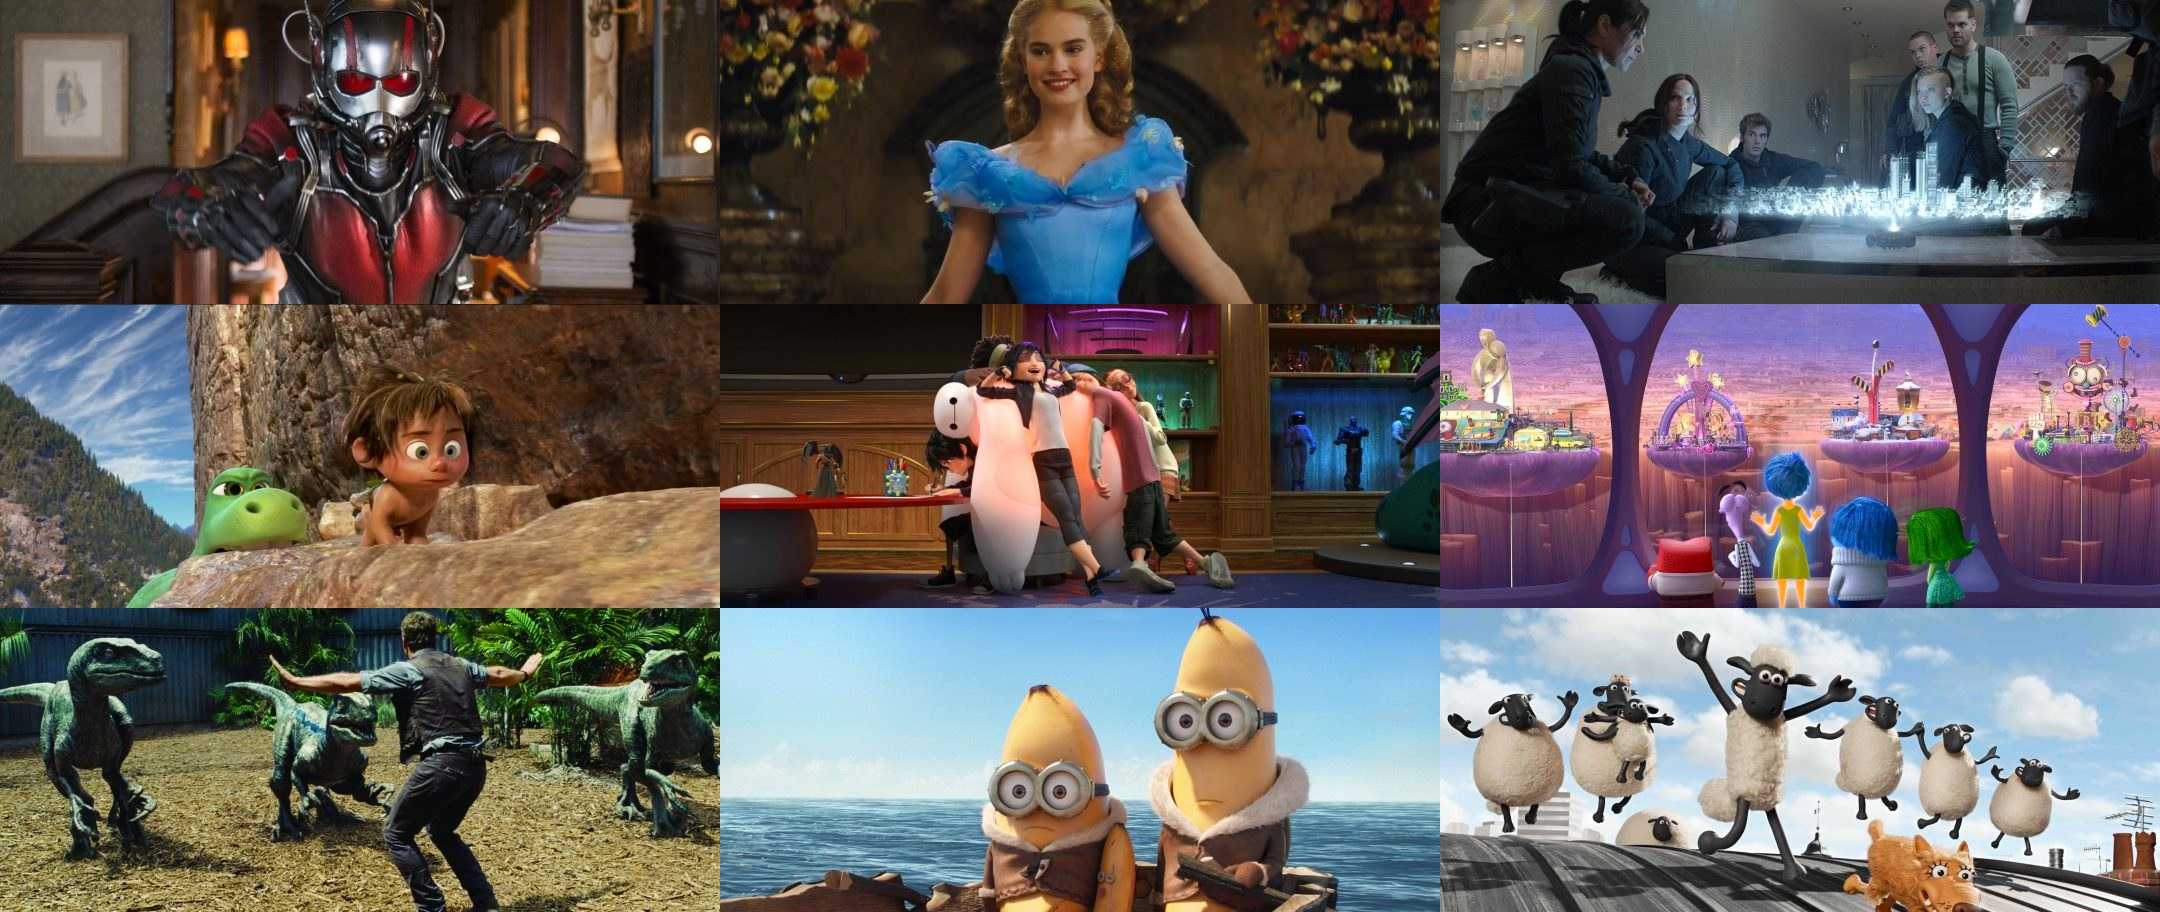 Top 10 Children's Movies 2015